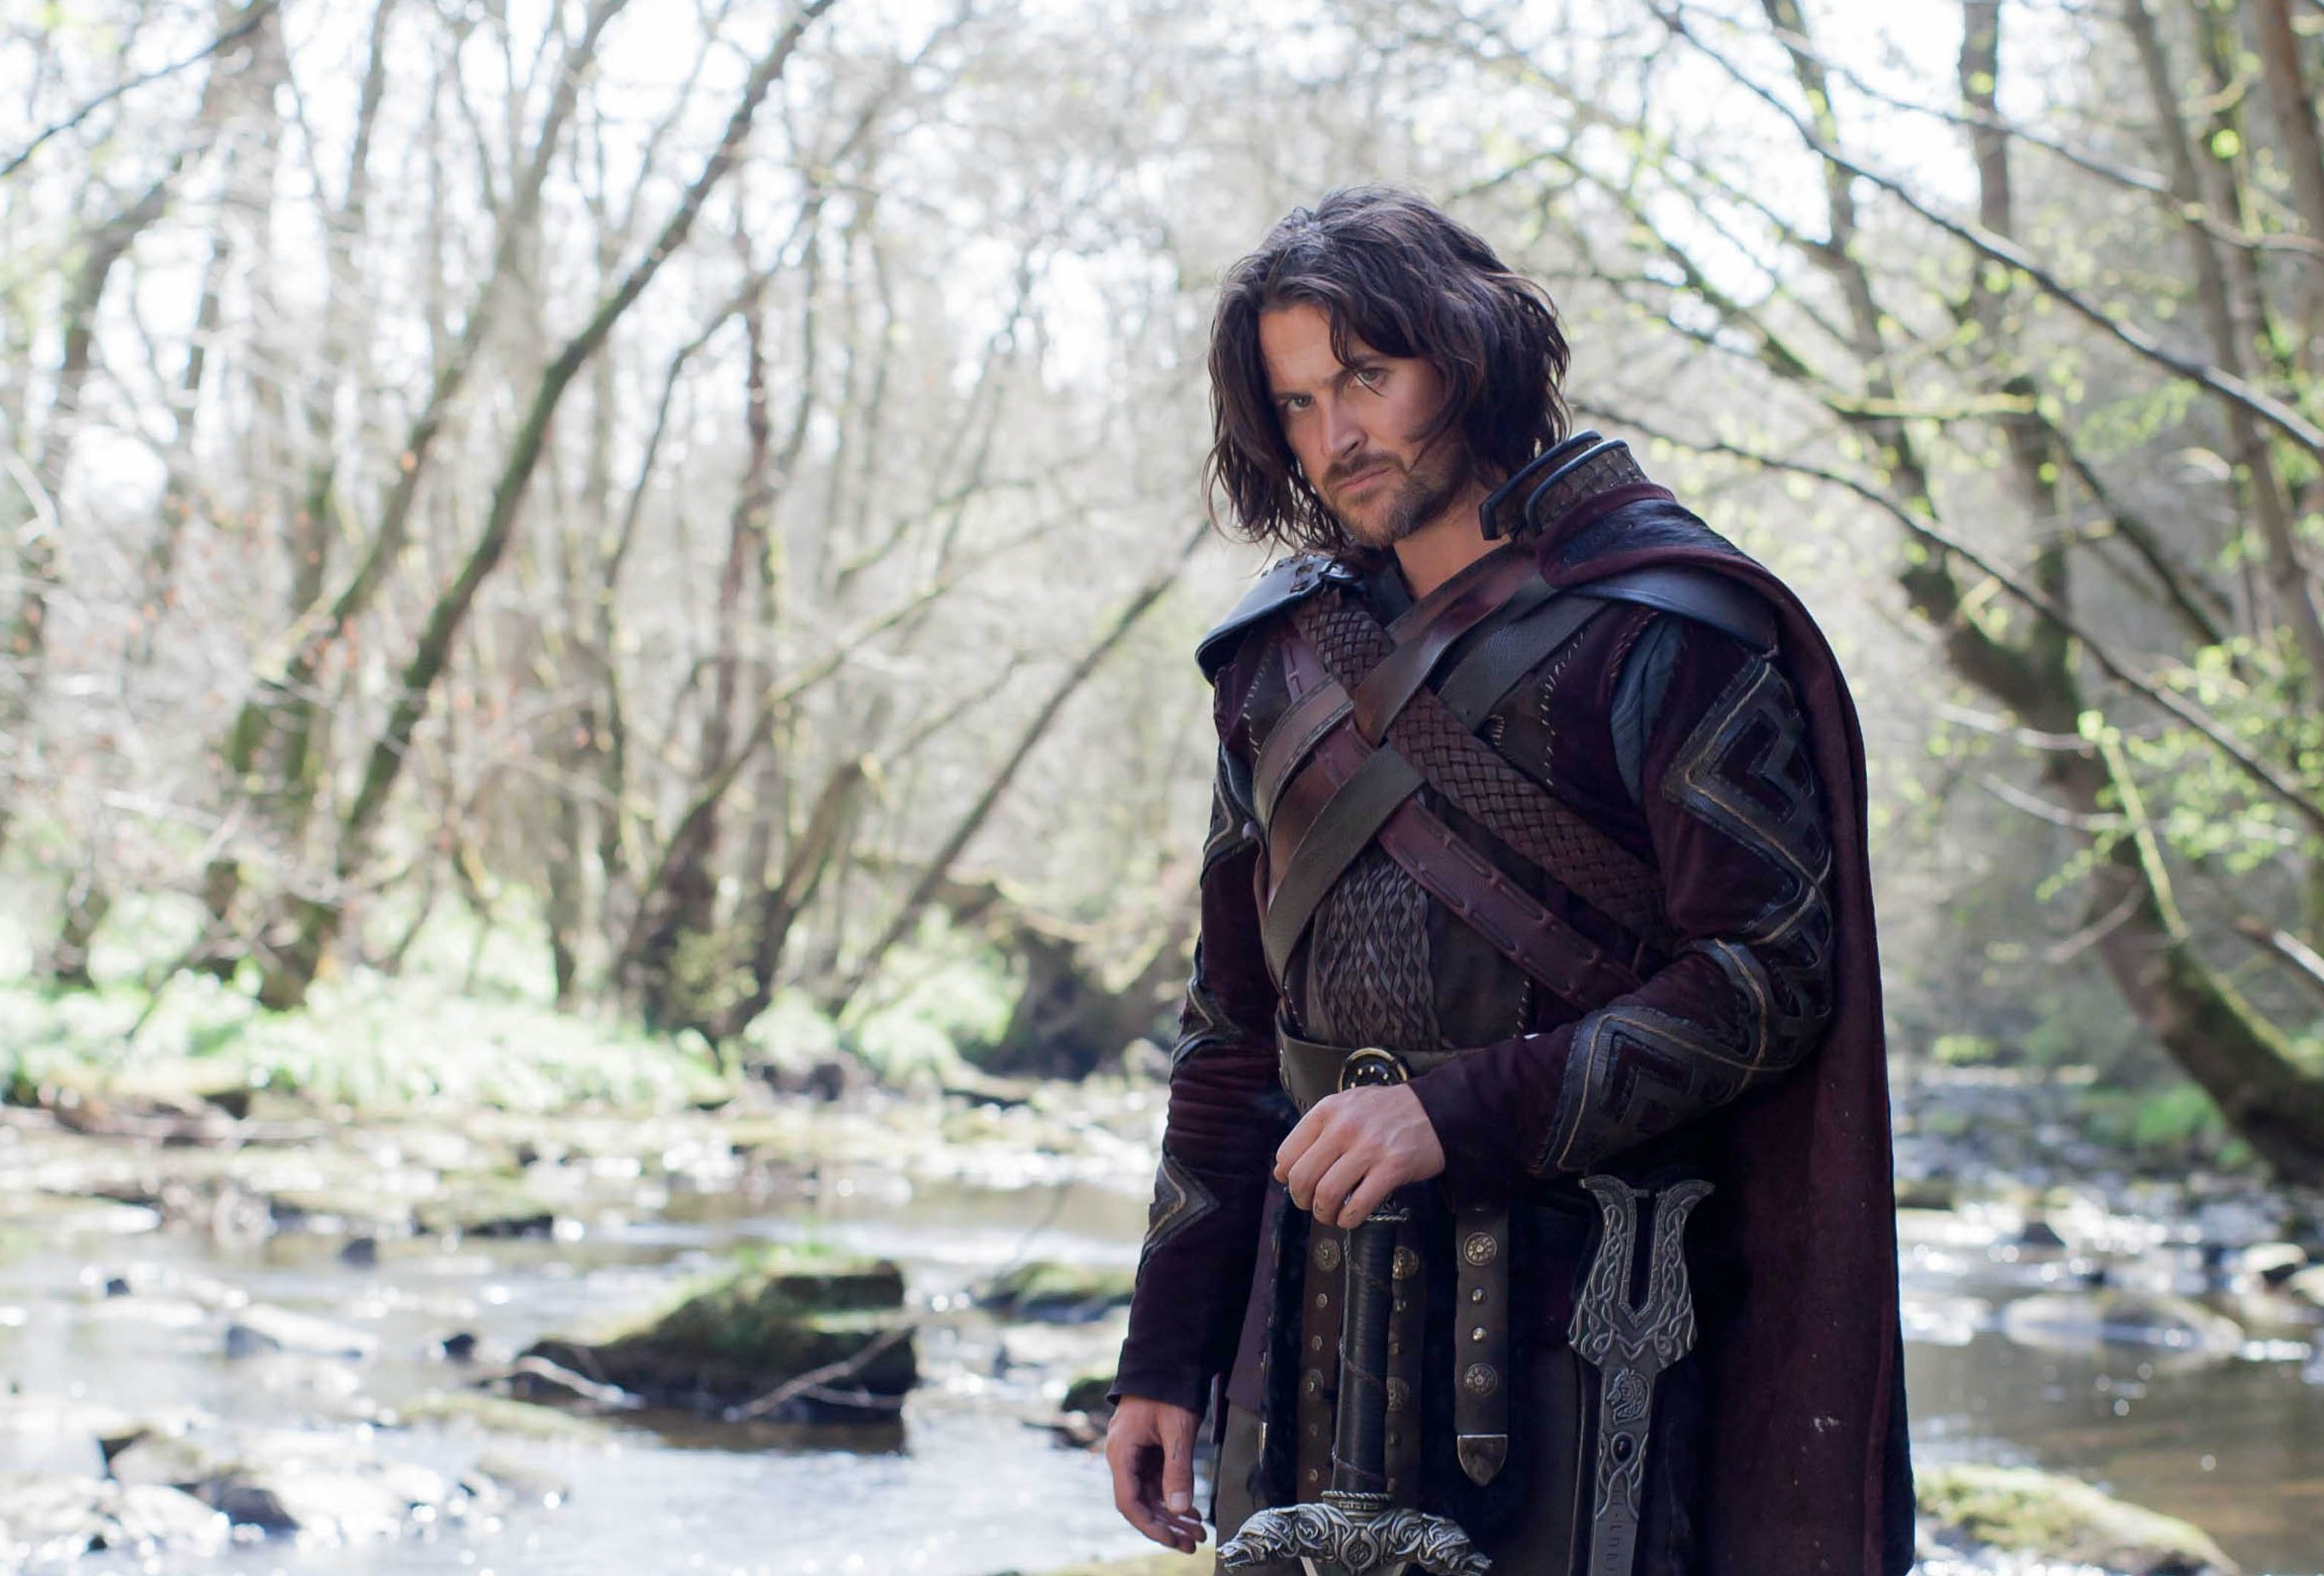 Kieran as Beowulf (Laurence Cendrowicz, Aimee Spinks and Justin Slee / ITV)